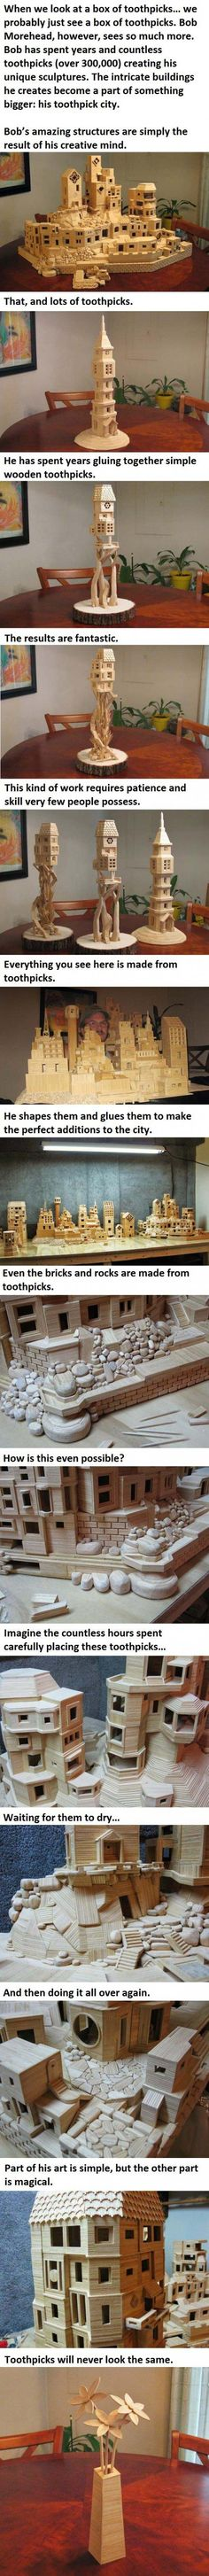 toothpicks as an art medium!  Amazing talent.